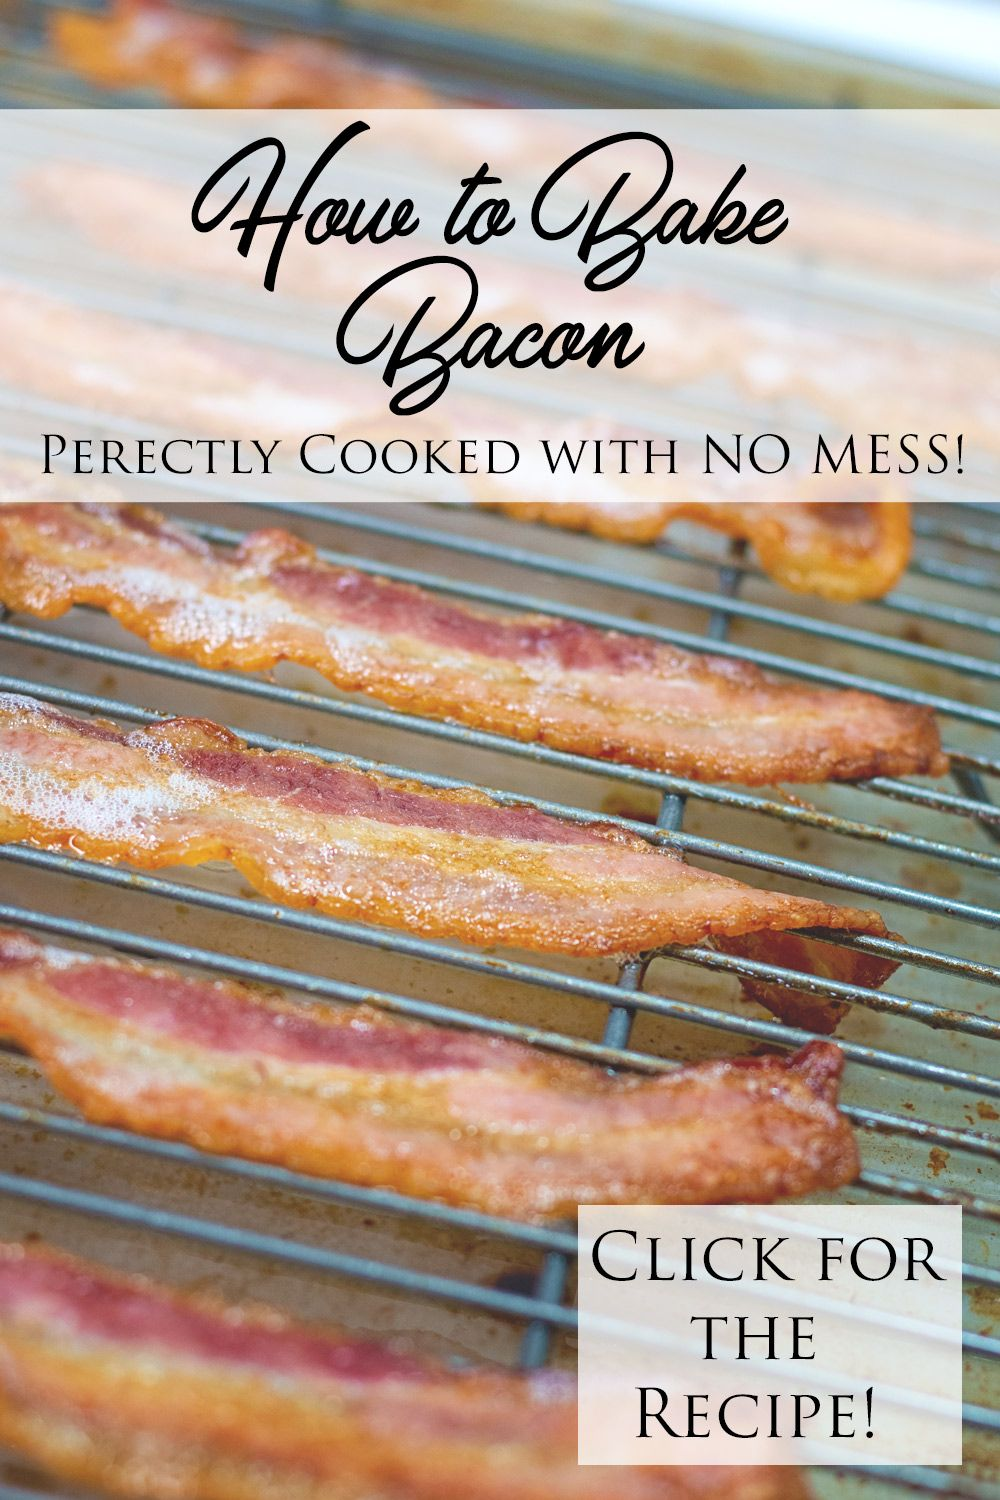 How to Make Bacon Baking bacon is the EASIEST way to make bacon. It turns out perfect every time, a